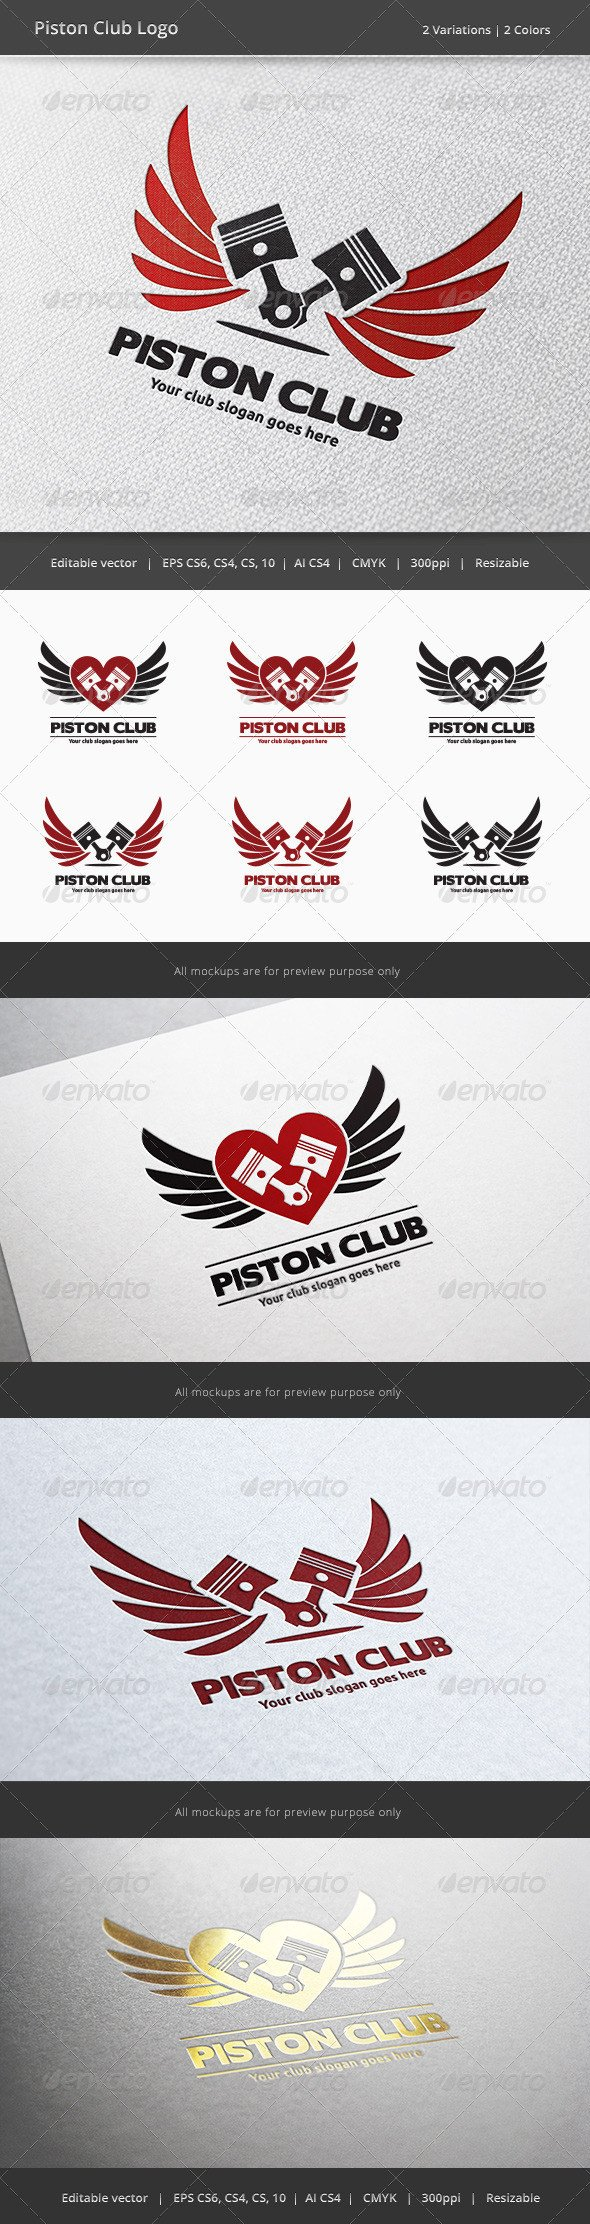 Motorcycle Club Patch Template Photoshop Piston Car and Motorcycle Club Logo